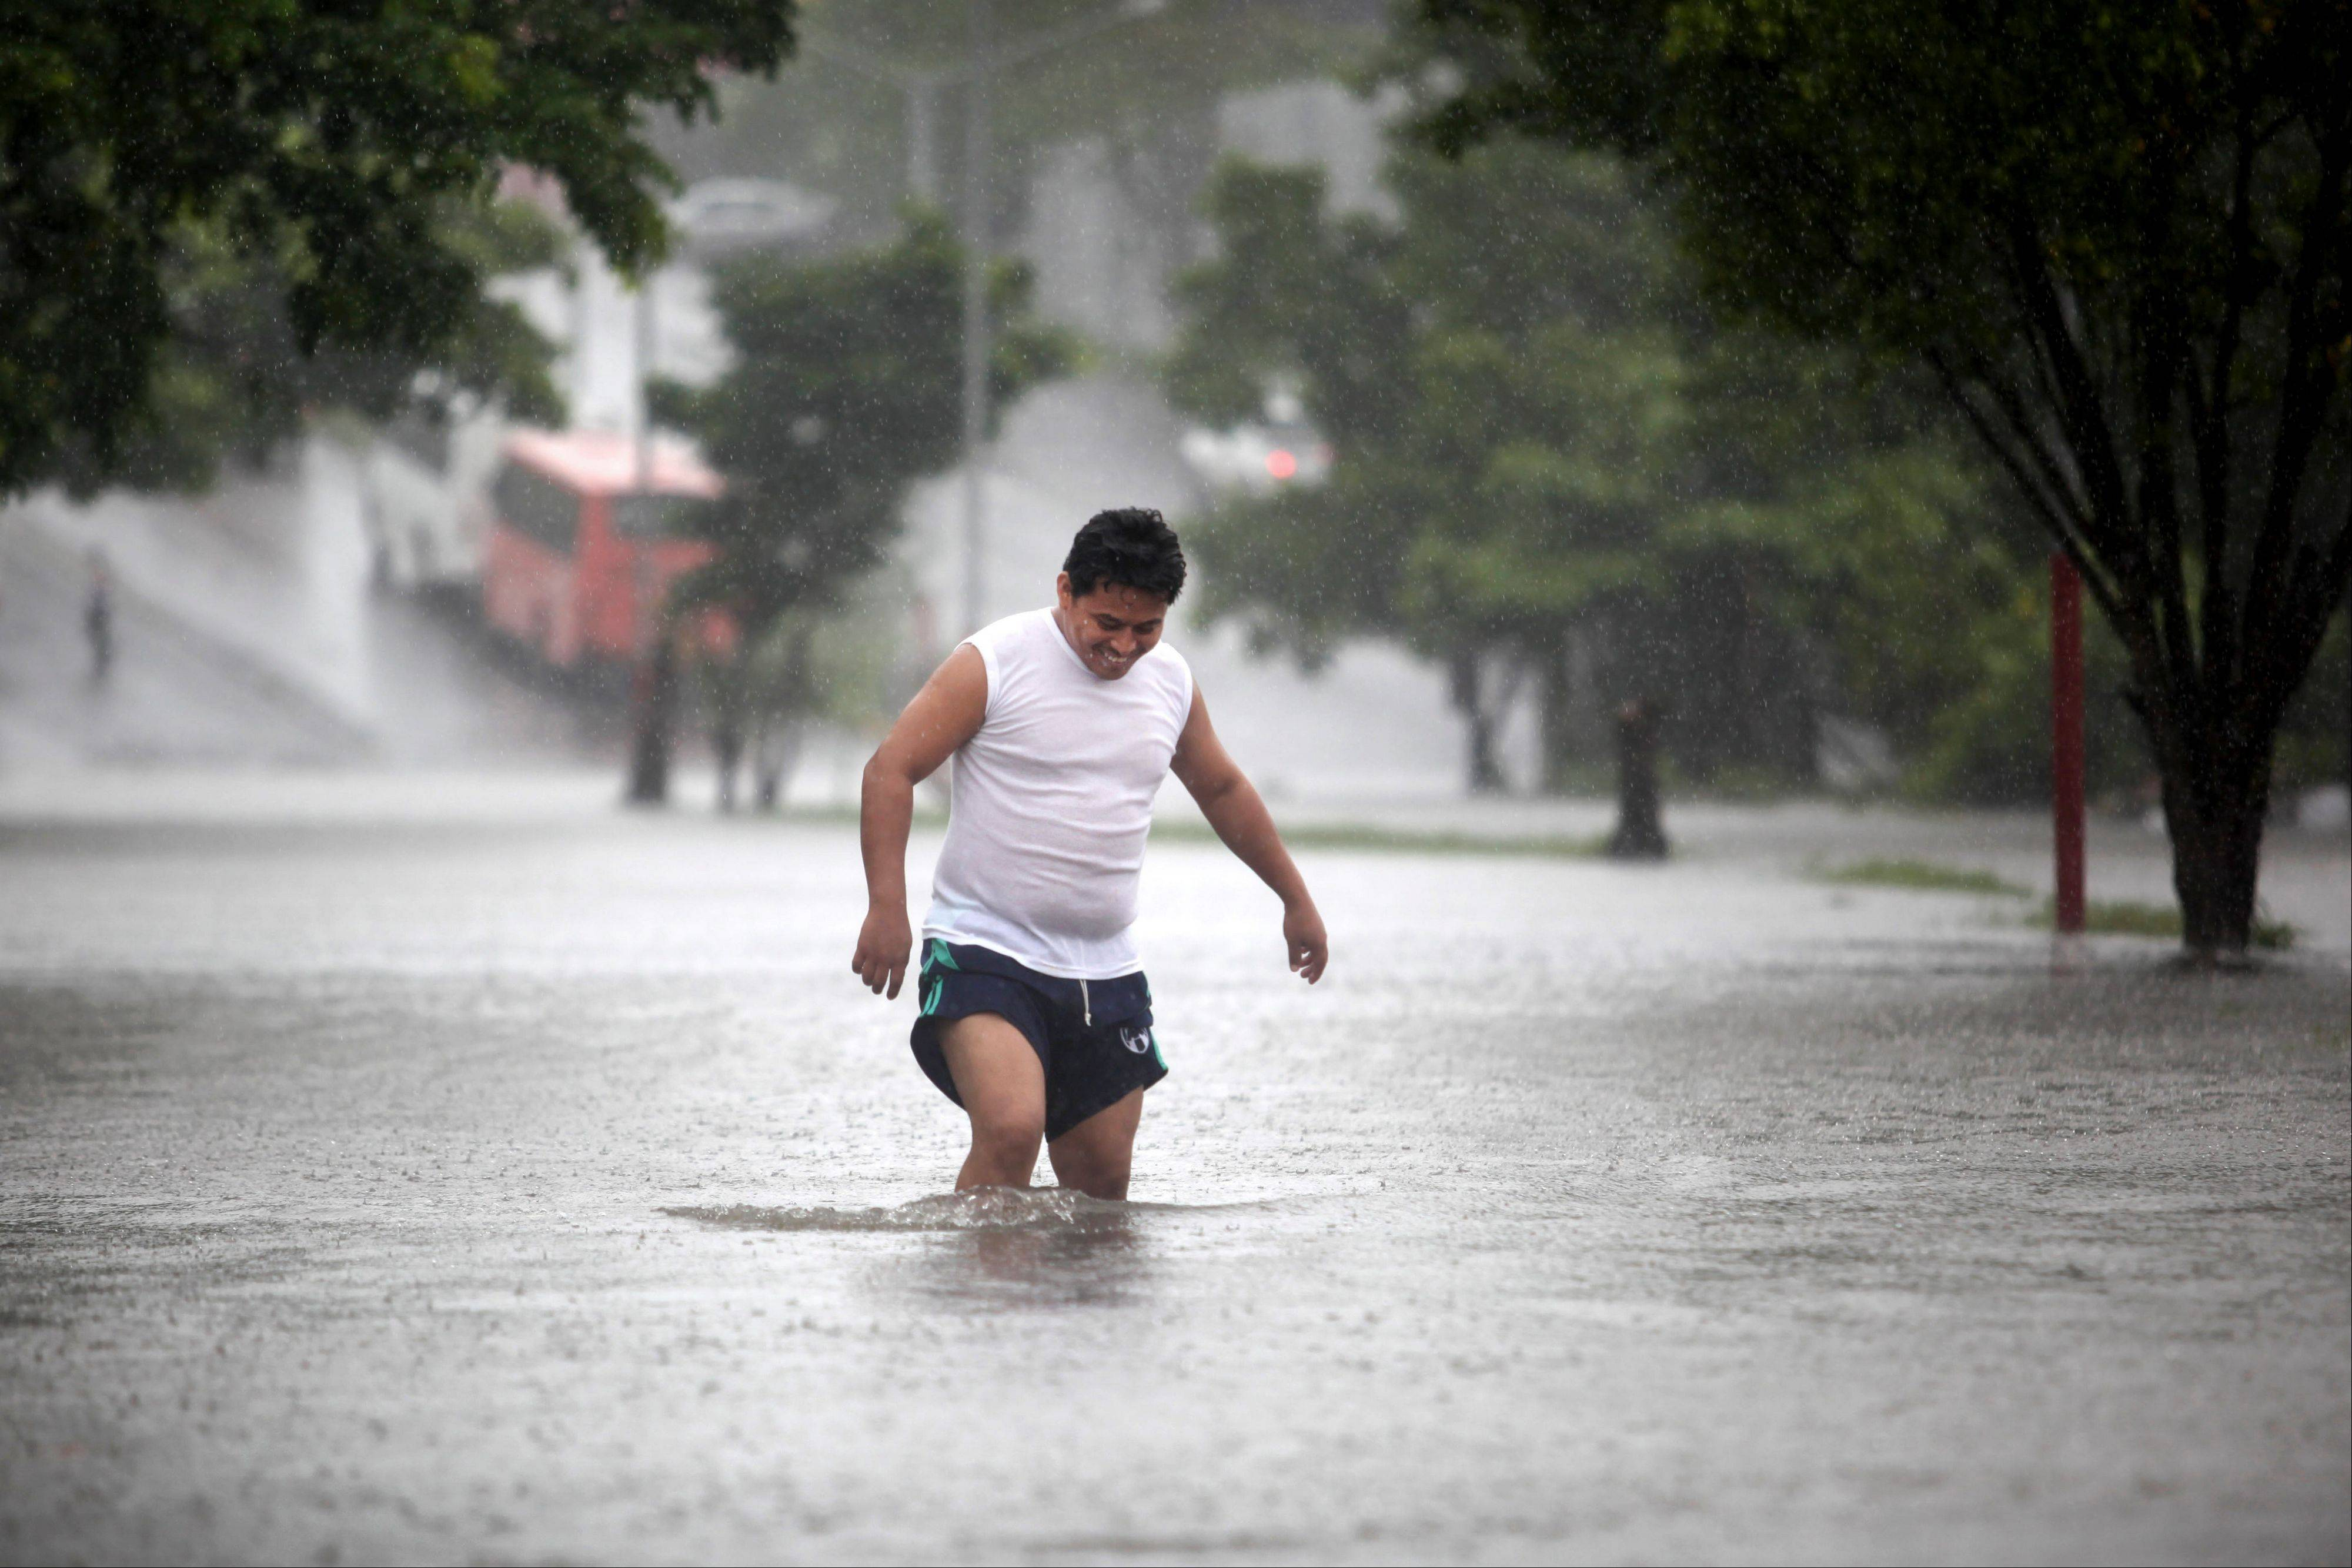 A man walks through a flooded street Friday during heavy rains caused by Tropical Storm Ingrid in the Gulf port city of Veracruz, Mexico.